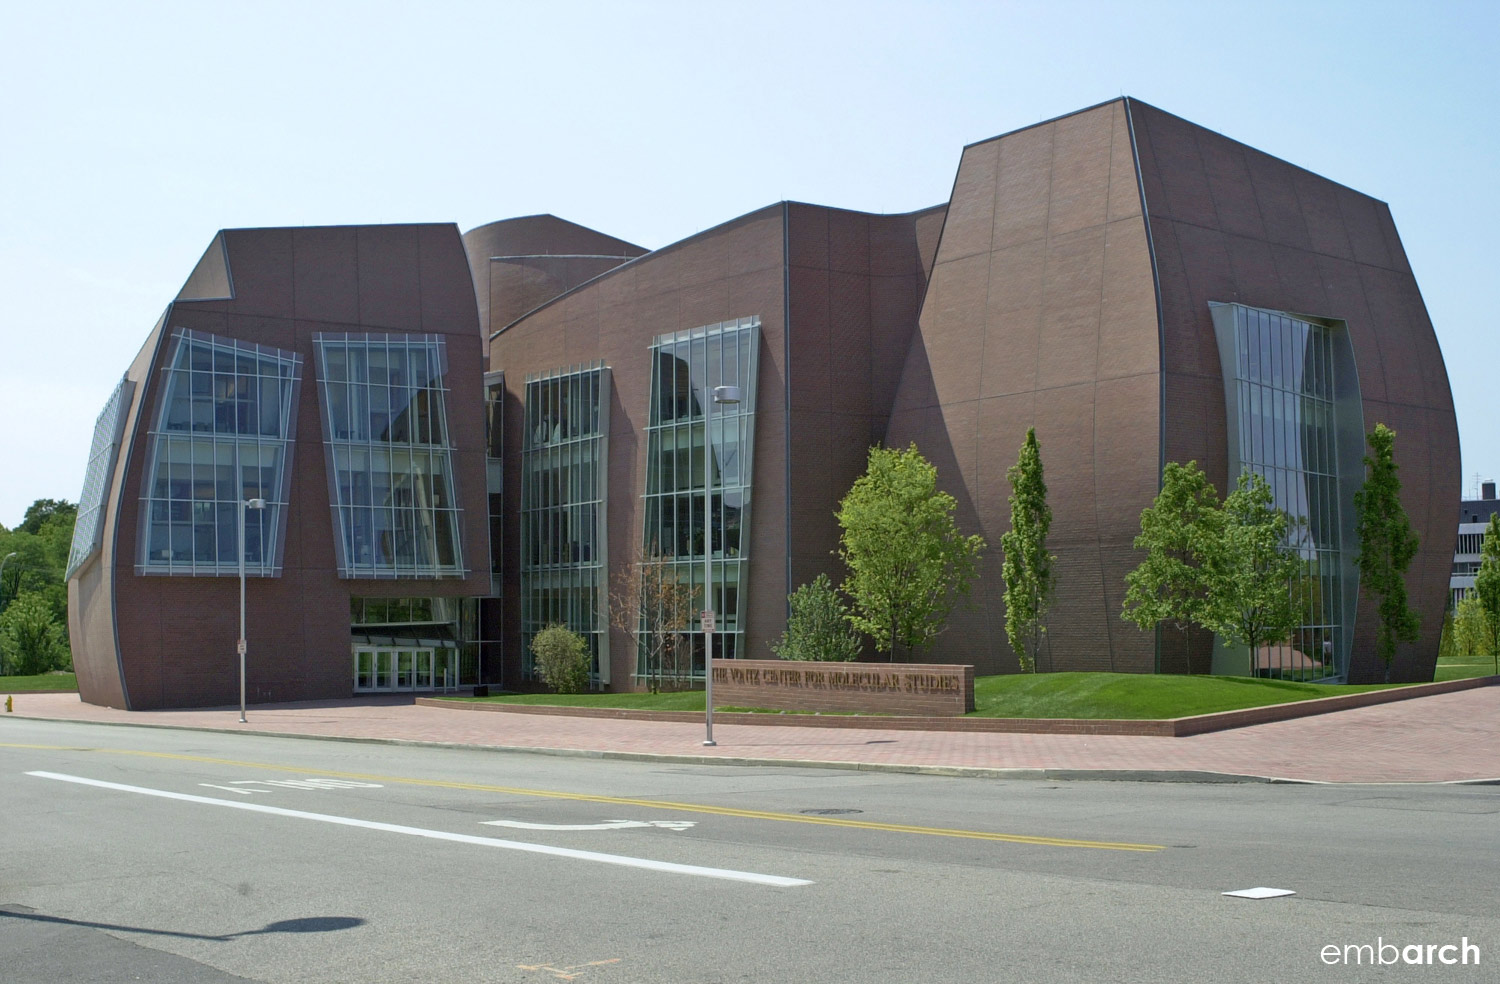 Vontz Center for Molecular Studies at the University of Cincinnati